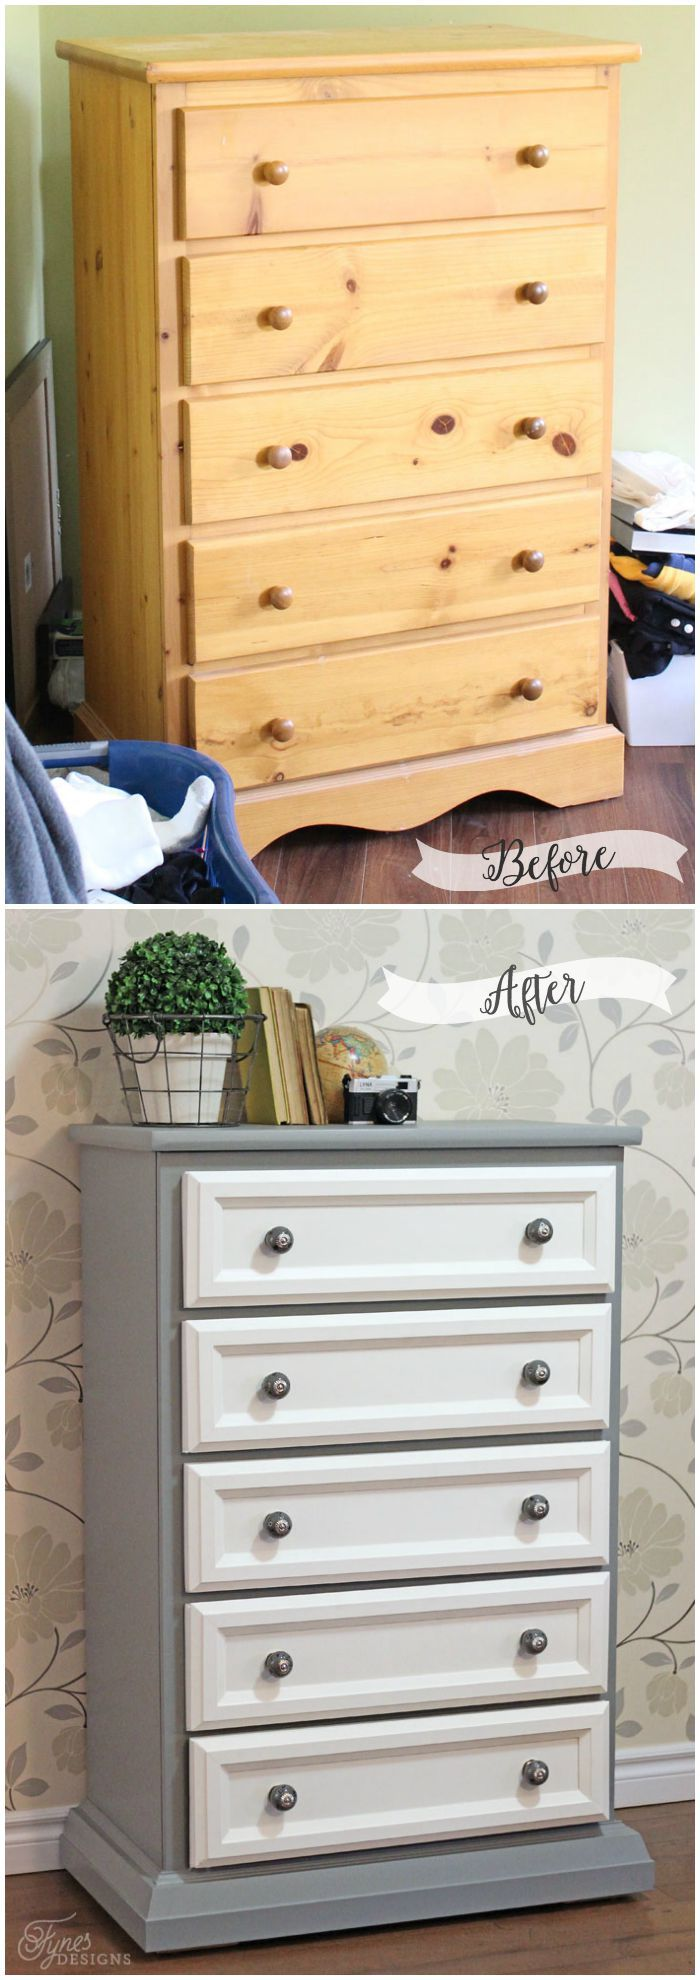 Tall Dresser Makeover Tutorial with Trim and Paint